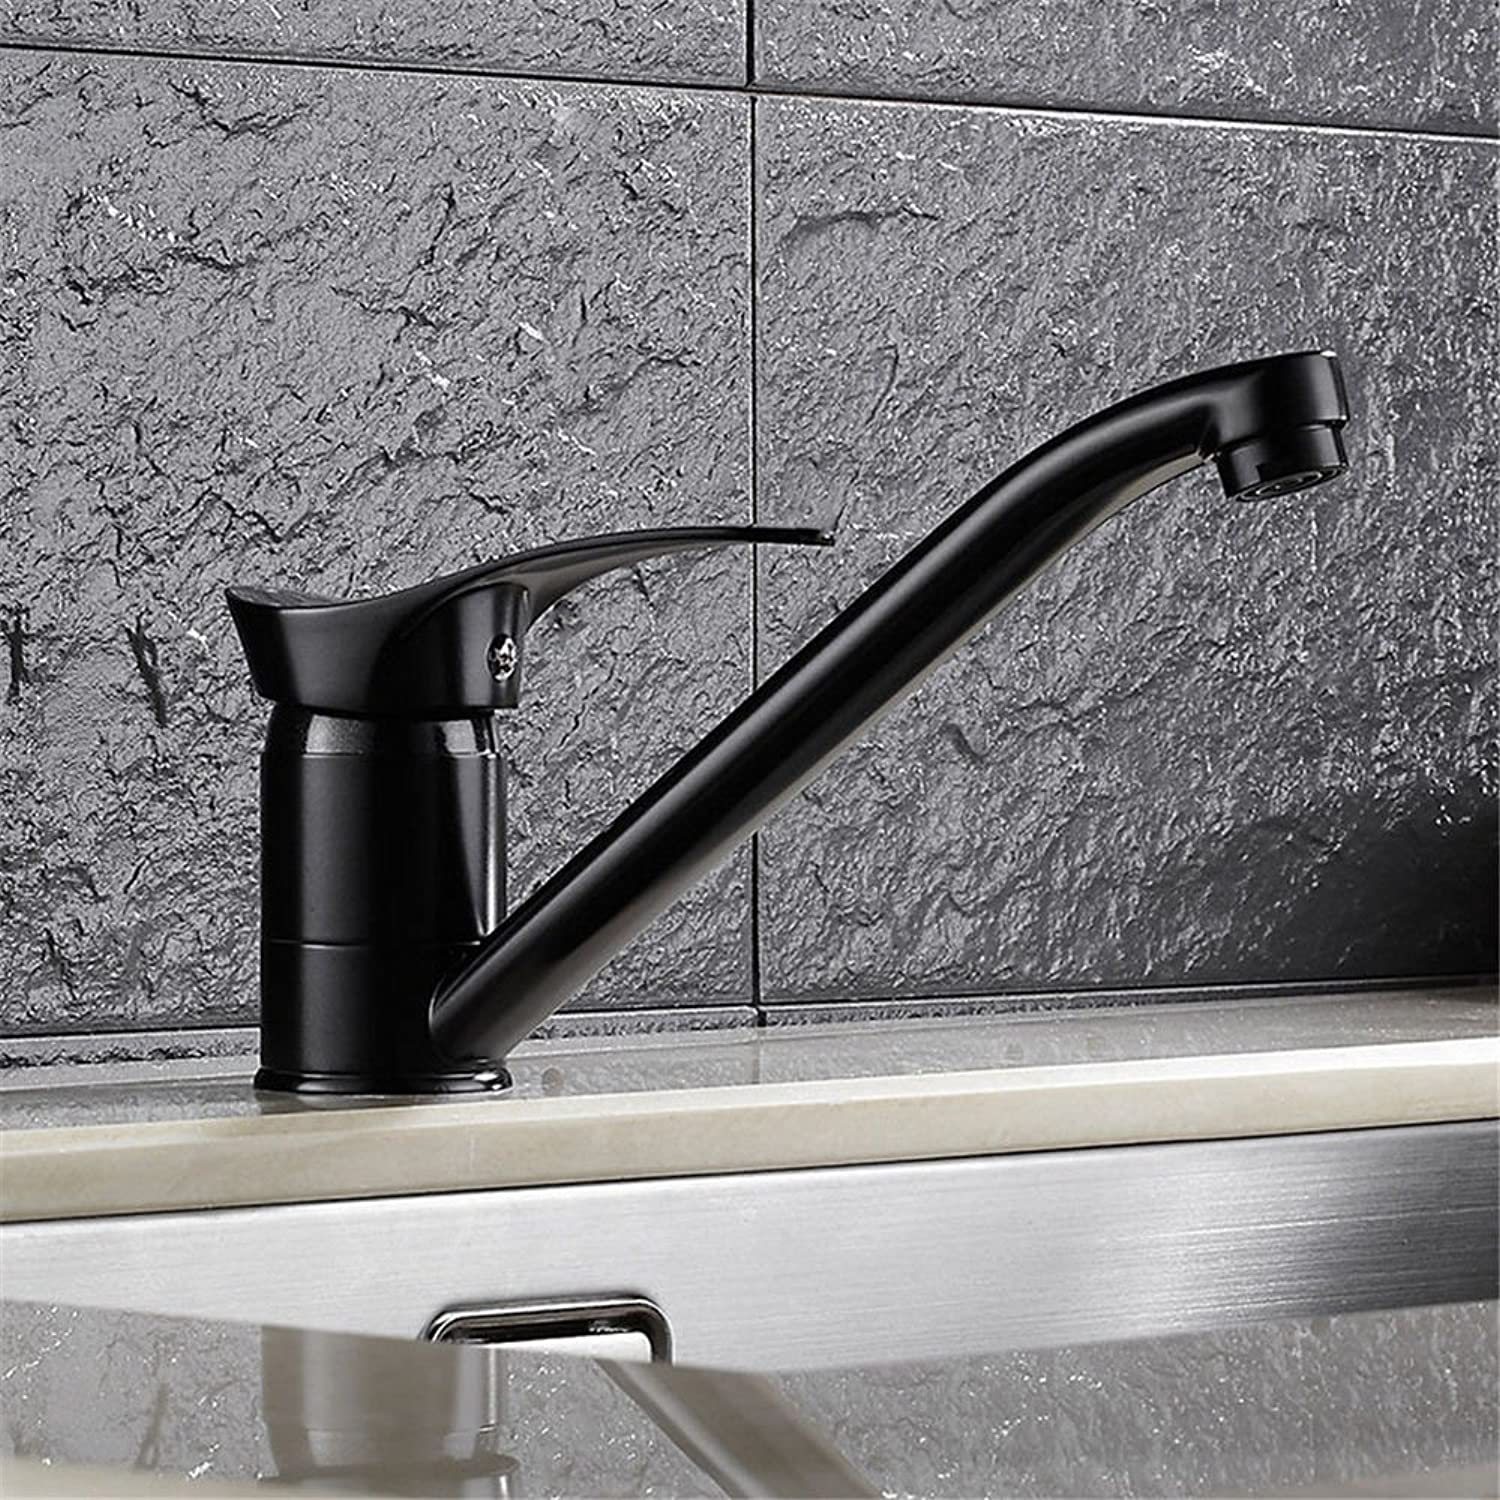 IJIAHOMIE Style of Bathroom Sink Taps, Bathroom Faucets,Waterfall Basin Sink Mixer Tap Modern Copper Kitchen hot and Cold Sink Basin